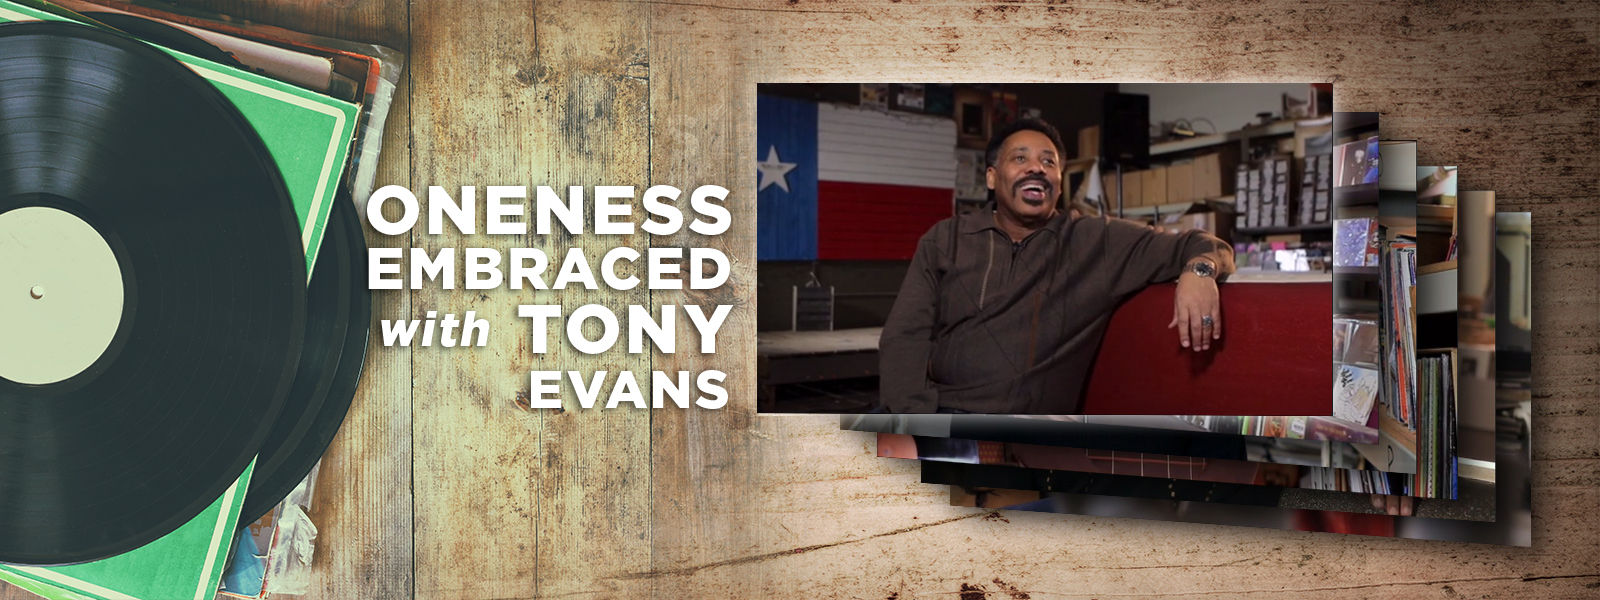 Oneness Embraced with Tony Evans